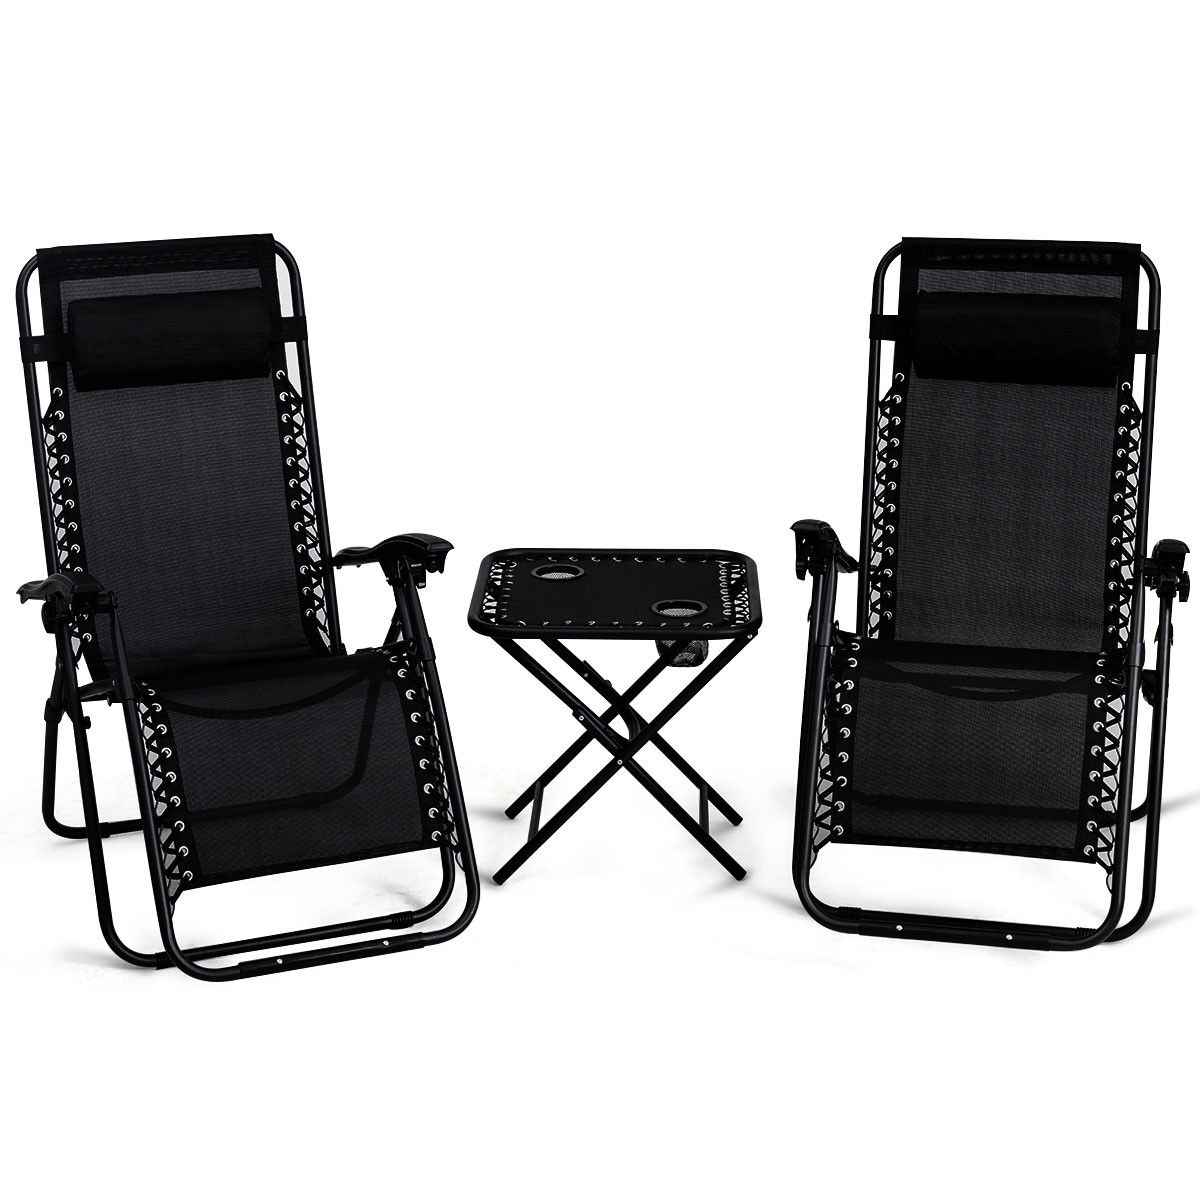 Gymax 3PC Zero Gravity Reclining Lounge Chairs Table Pillows Folding Portable Black